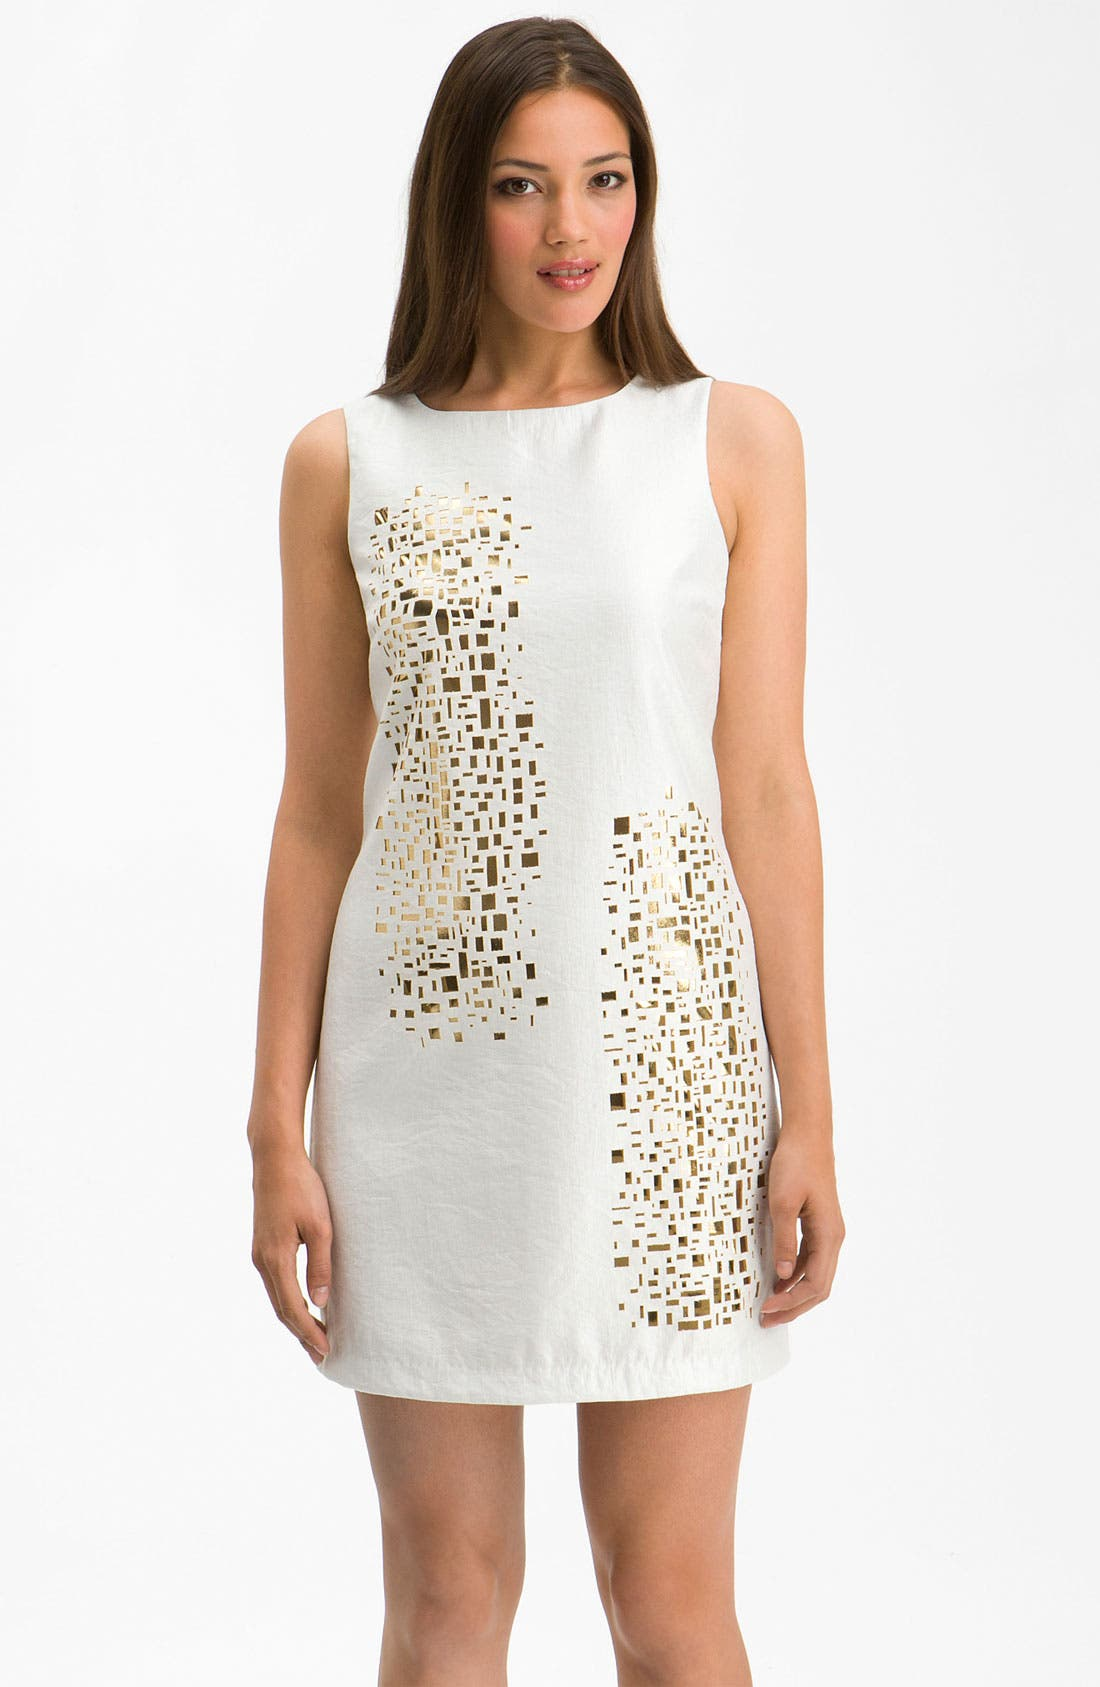 Main Image - Alexia Admor 'Mosaic' Cutout Shift Dress